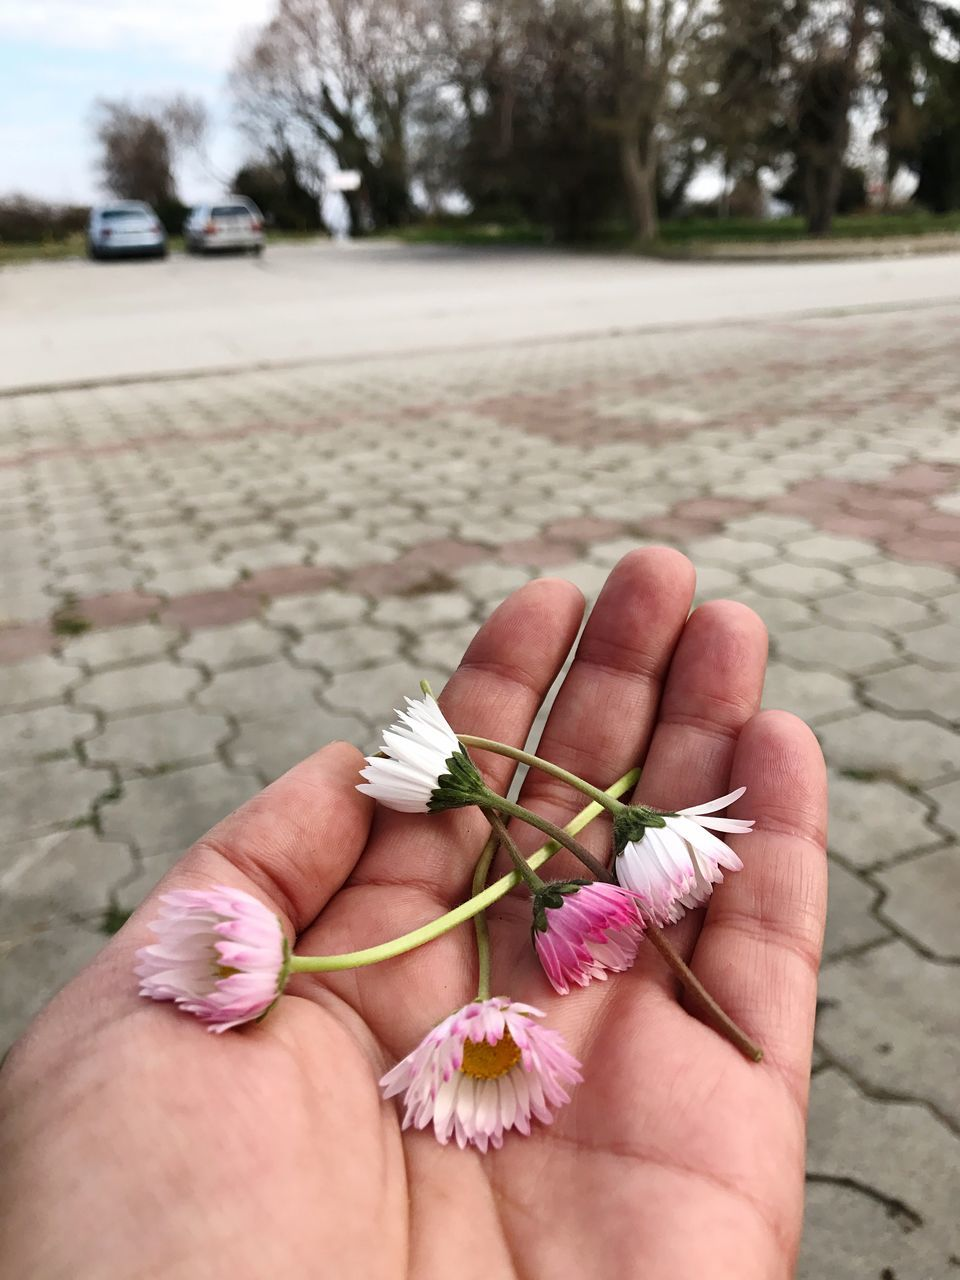 real people, flower, human body part, one person, outdoors, human hand, focus on foreground, day, low section, close-up, women, human leg, lifestyles, fragility, nature, flower head, tree, freshness, frangipani, people